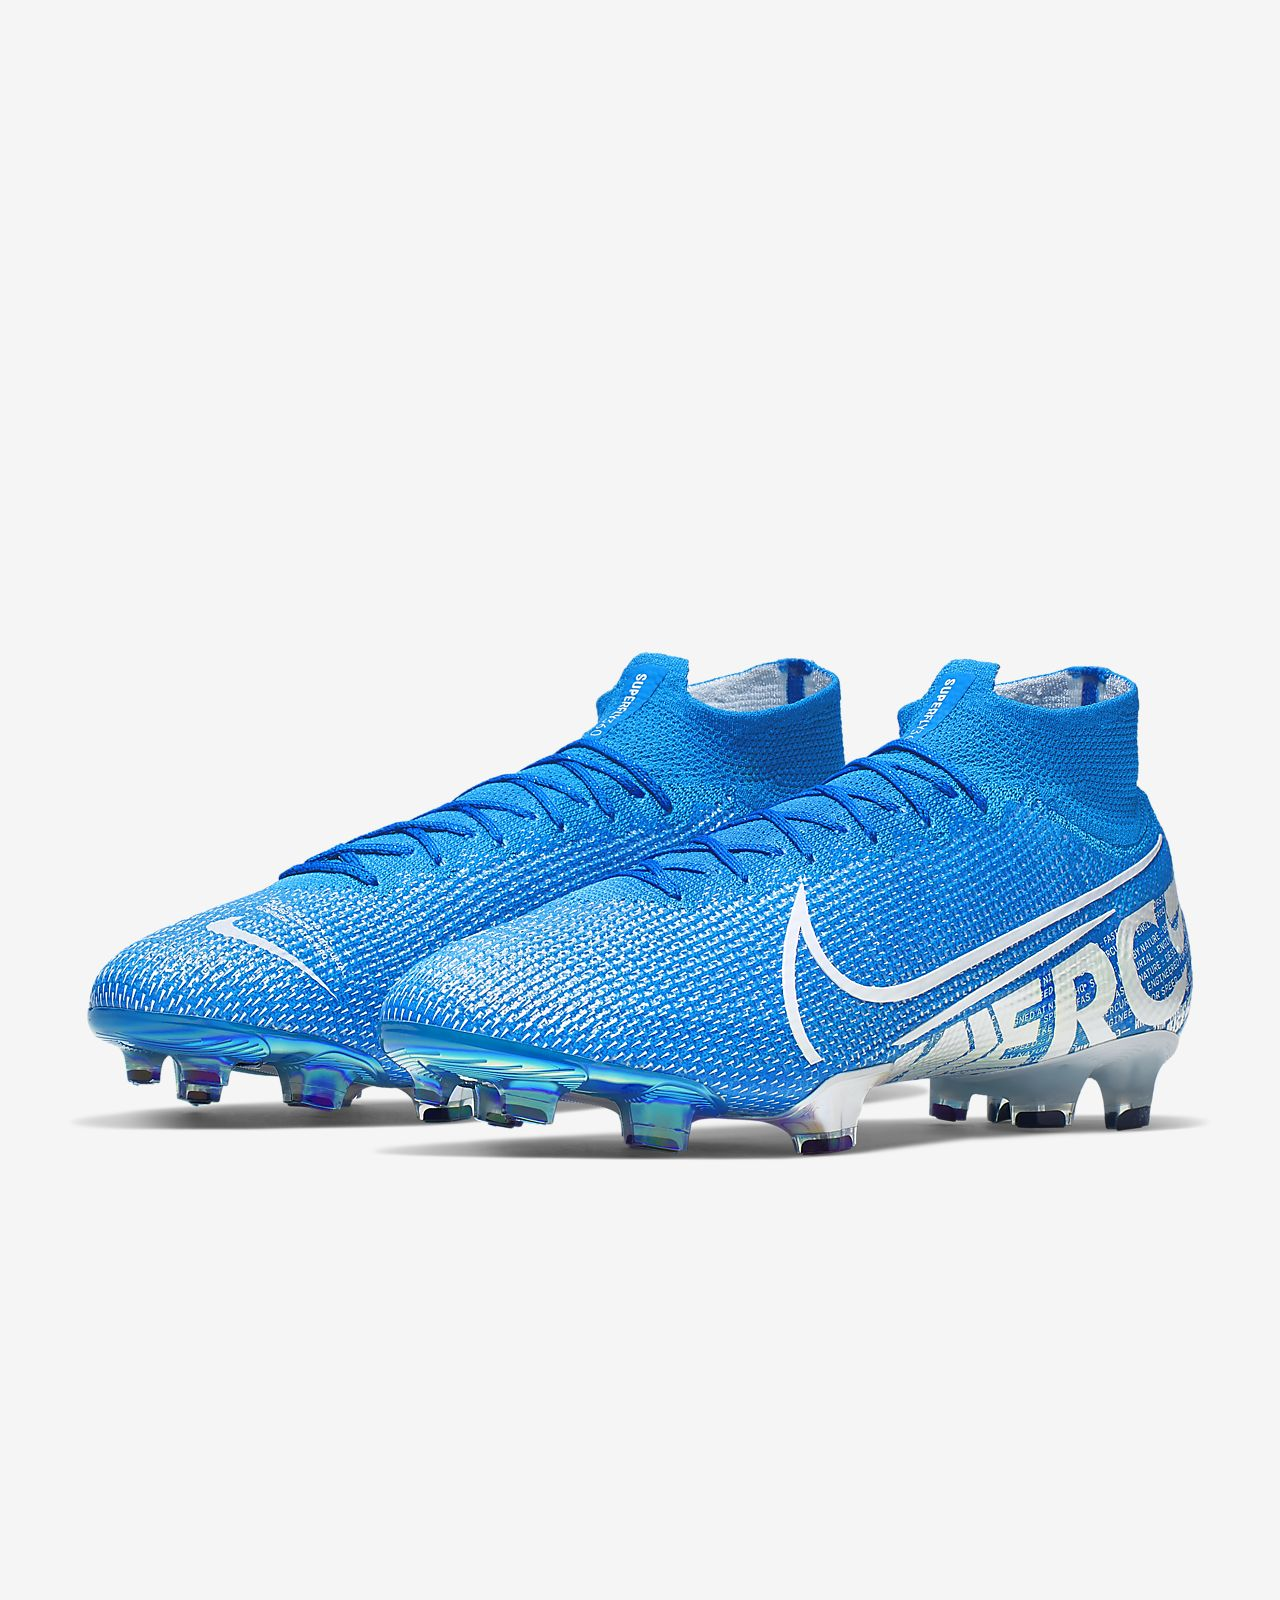 Nike Mercurial Superfly 7 Elite FG Firm Ground Football Boot